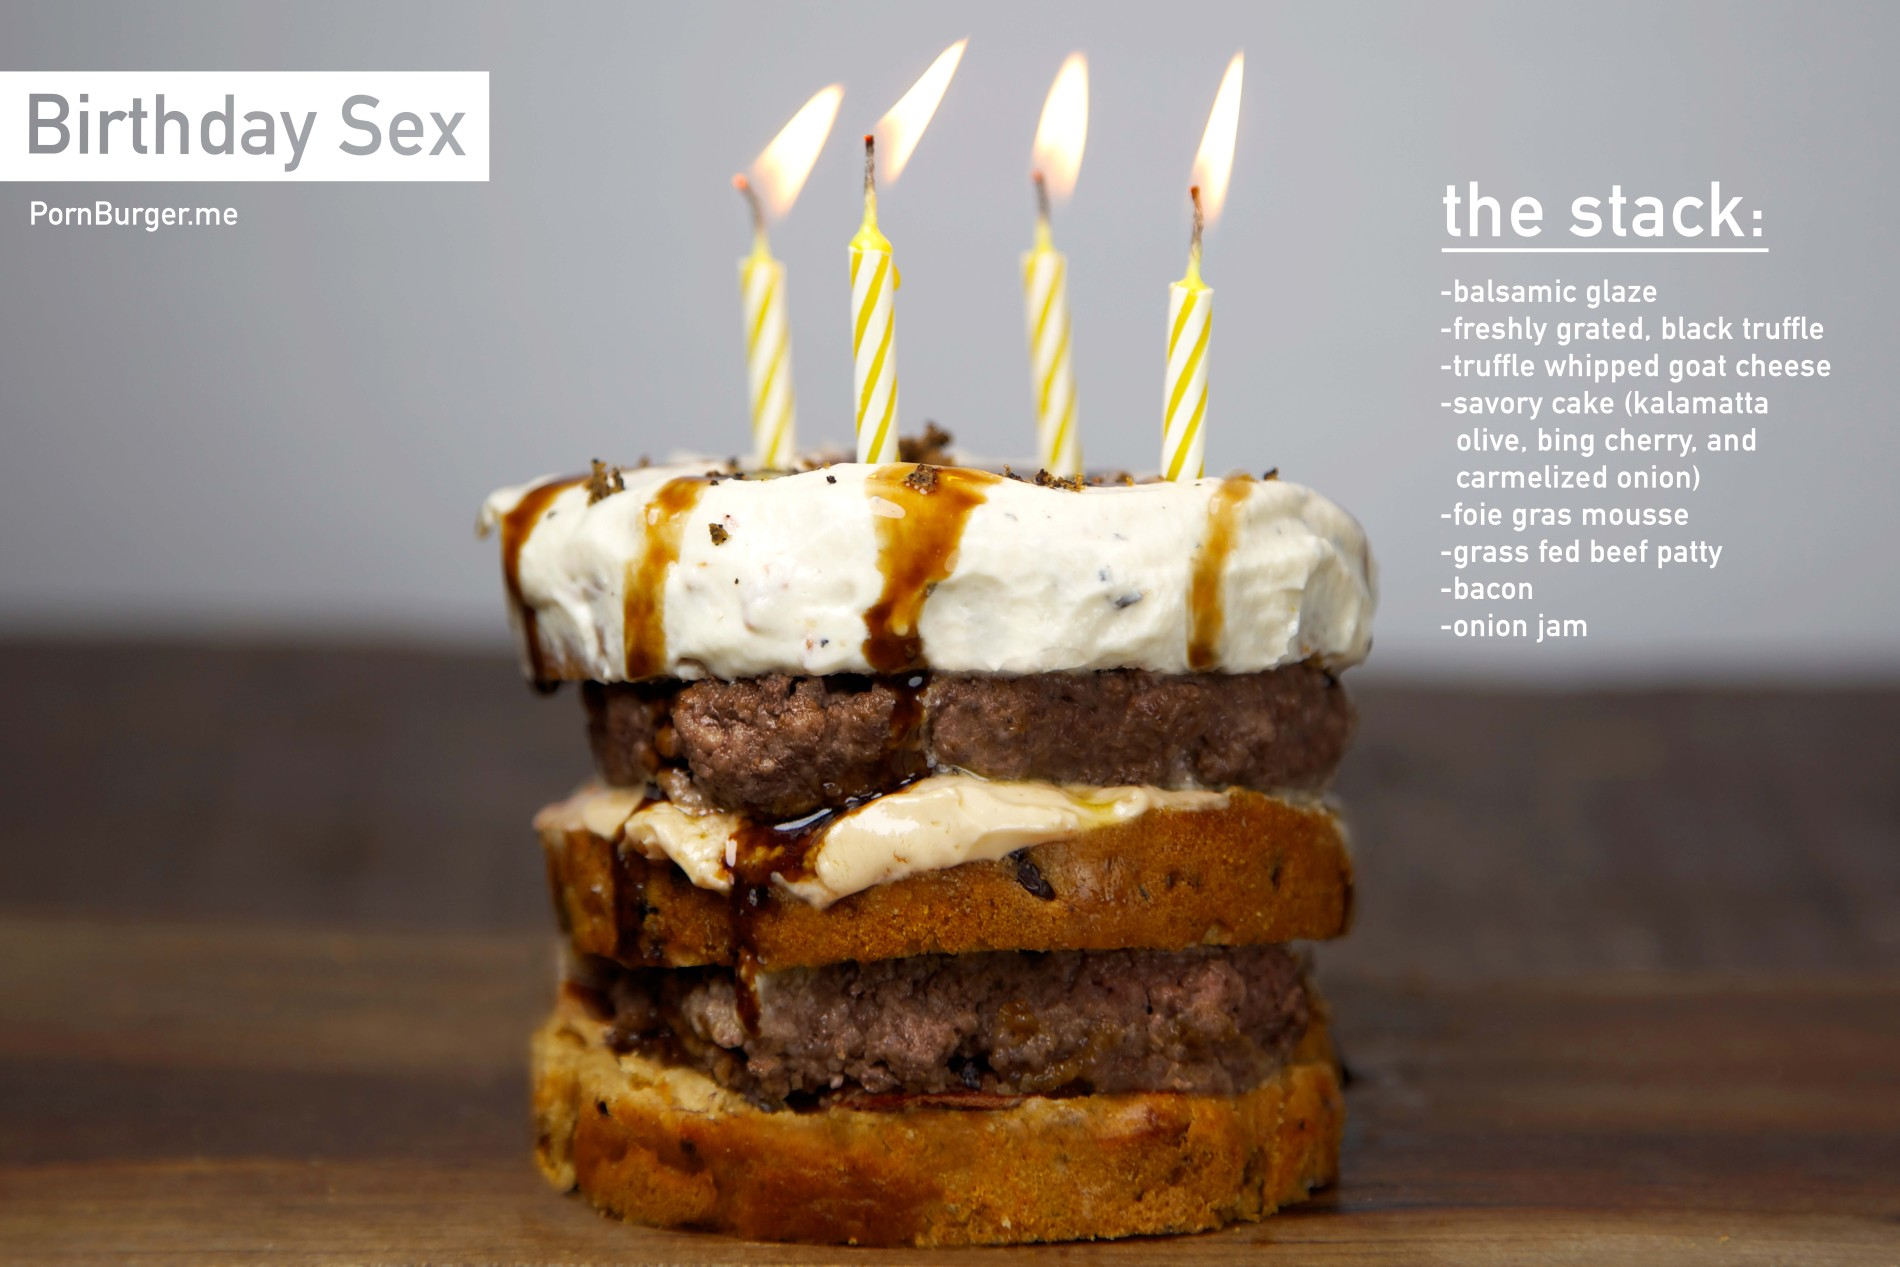 BirthdaySex_Official1